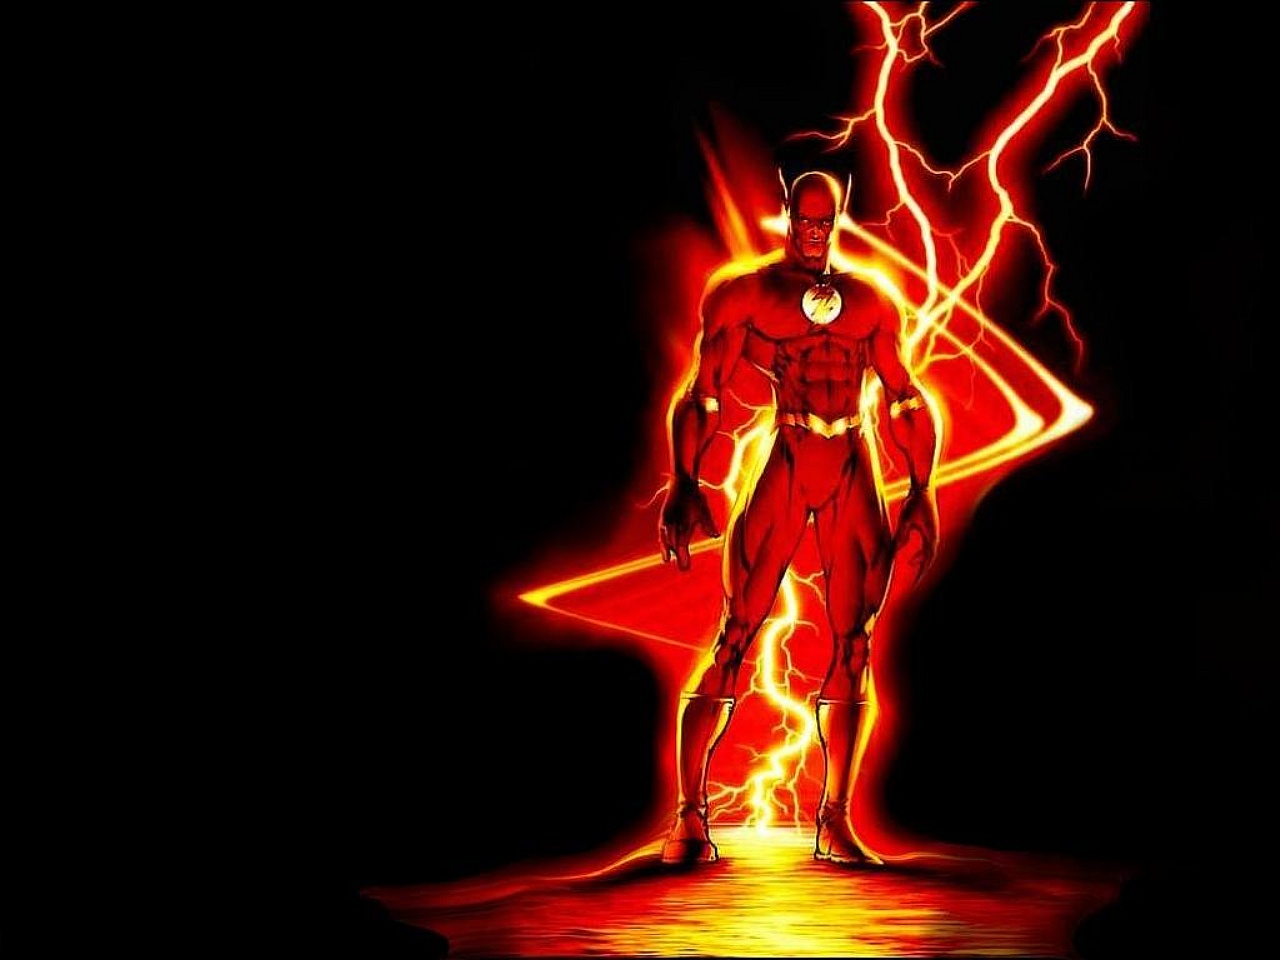 The Flash 2   Comics Photography Desktop Wallpapers 22826 Views 1280x960